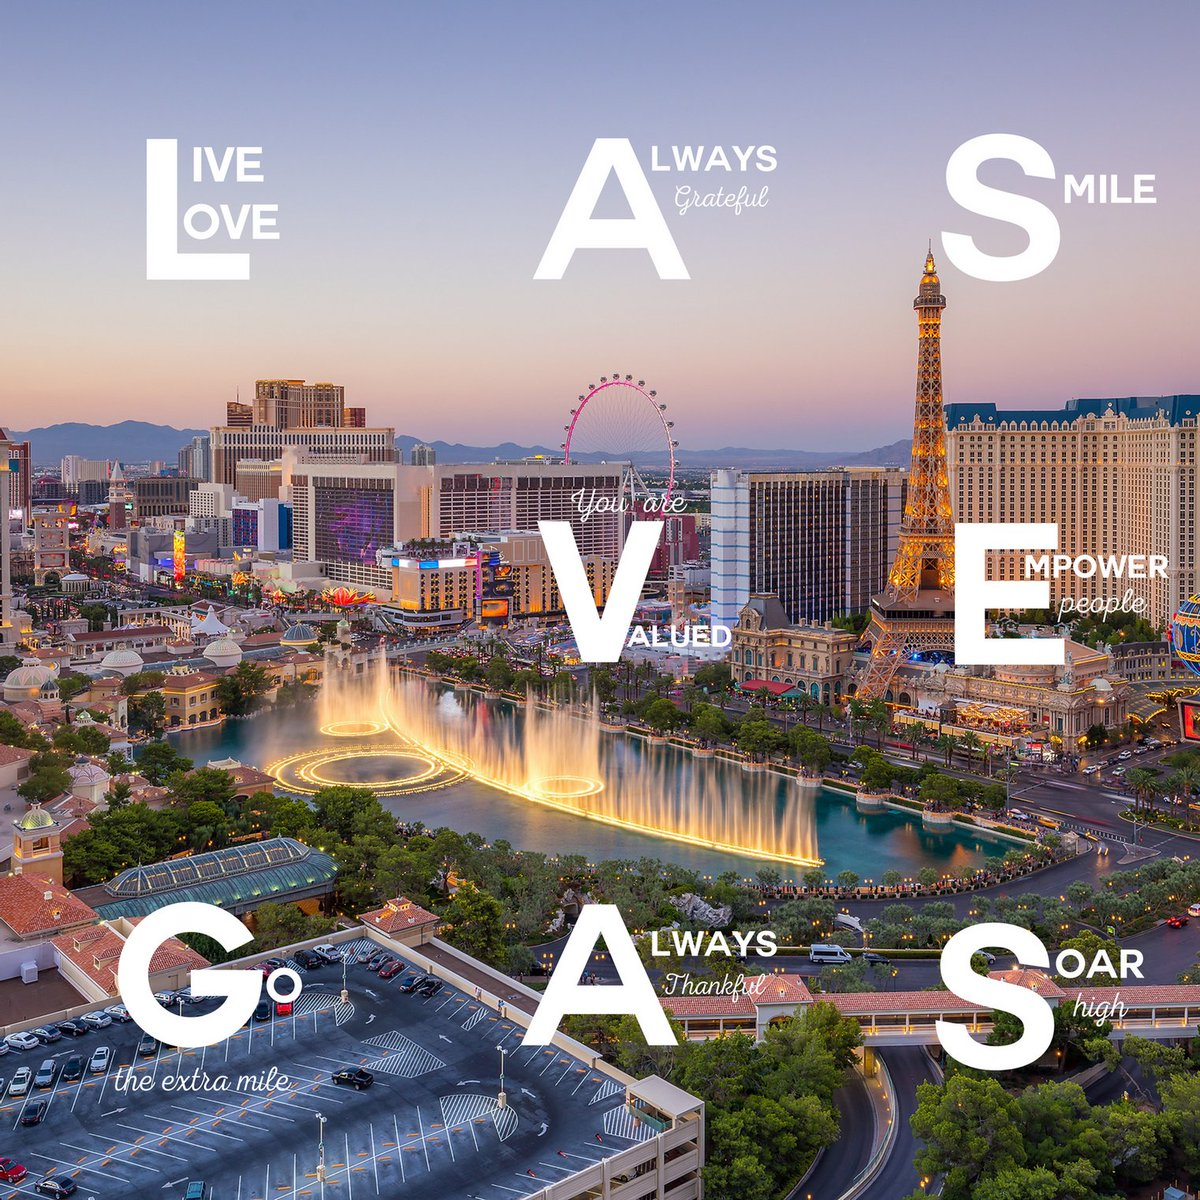 Live and love to the fullest at Las Vegas, the Entertainment Capital of the World.  #YourEliteEvent #LasVegas #vegas #love #travel #nevada #lasvegasstrip #vacation #wanderlust #travelgram #instatravel#vacation #holiday  https://t.co/P6WpPvt5gl https://t.co/WxRzrS3GYM